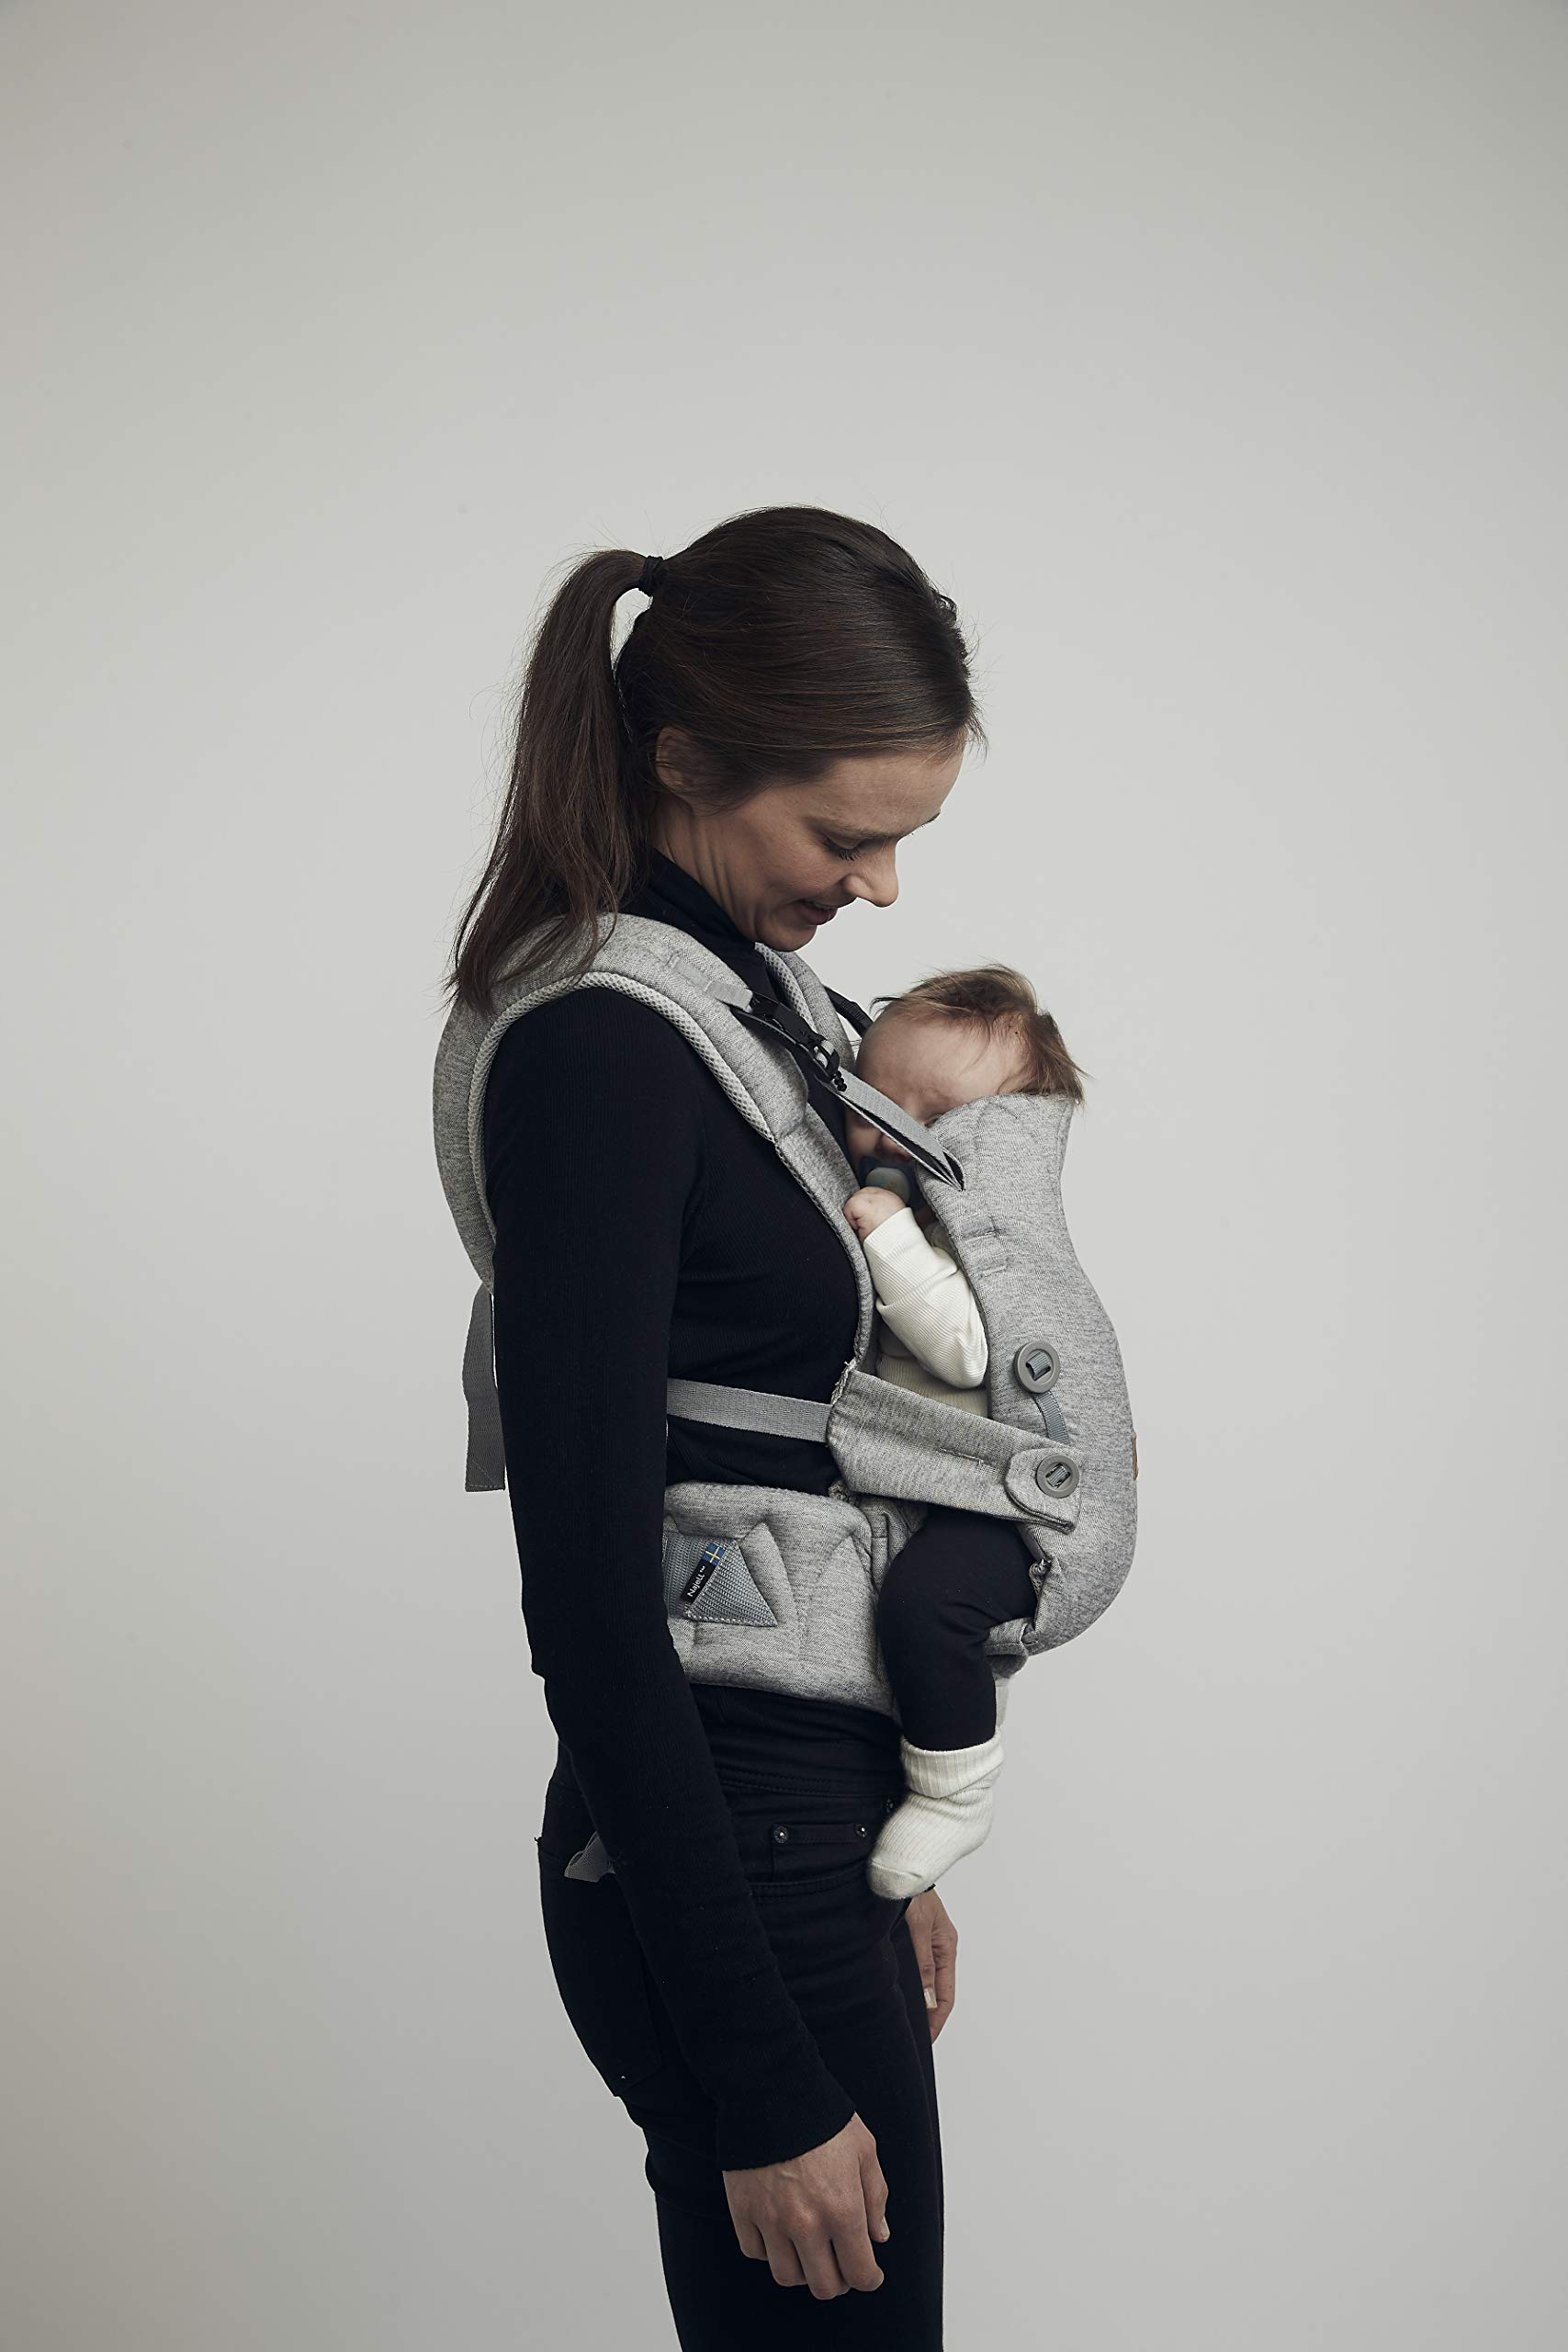 Najell Omni Active Mesh Baby Carrier with Hip Seat, Brilliant Black Béaba New-born ergonomic position and hips seat from 6 months. Market leading weight distribution with hip seat, recommended by the international hip dysplasia institute as a hip-healthy baby carrier Weight: 3, 5 to 15 kg and age: new-born to 3 years. 19